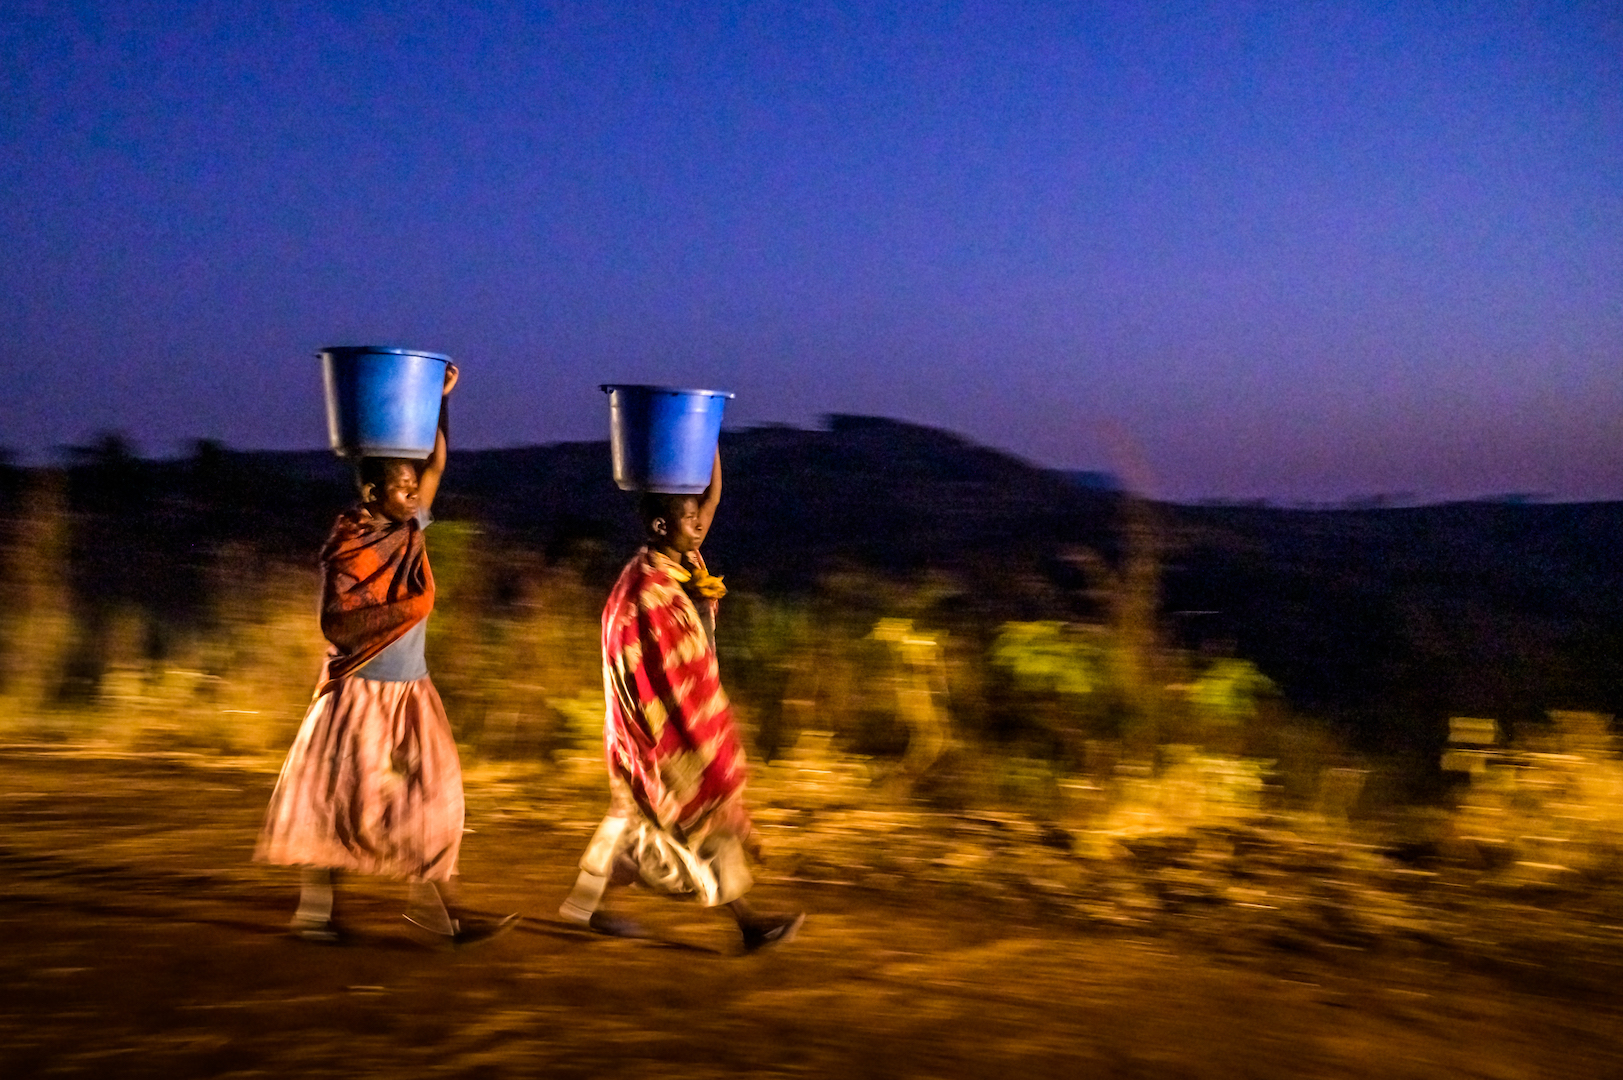 For Happiness (front) and her twin sister Gift, their first walk for water begins before dawn. Each day around the world, women and girls in developing countries walk an average of 6 kilometers for water that is often contaminated